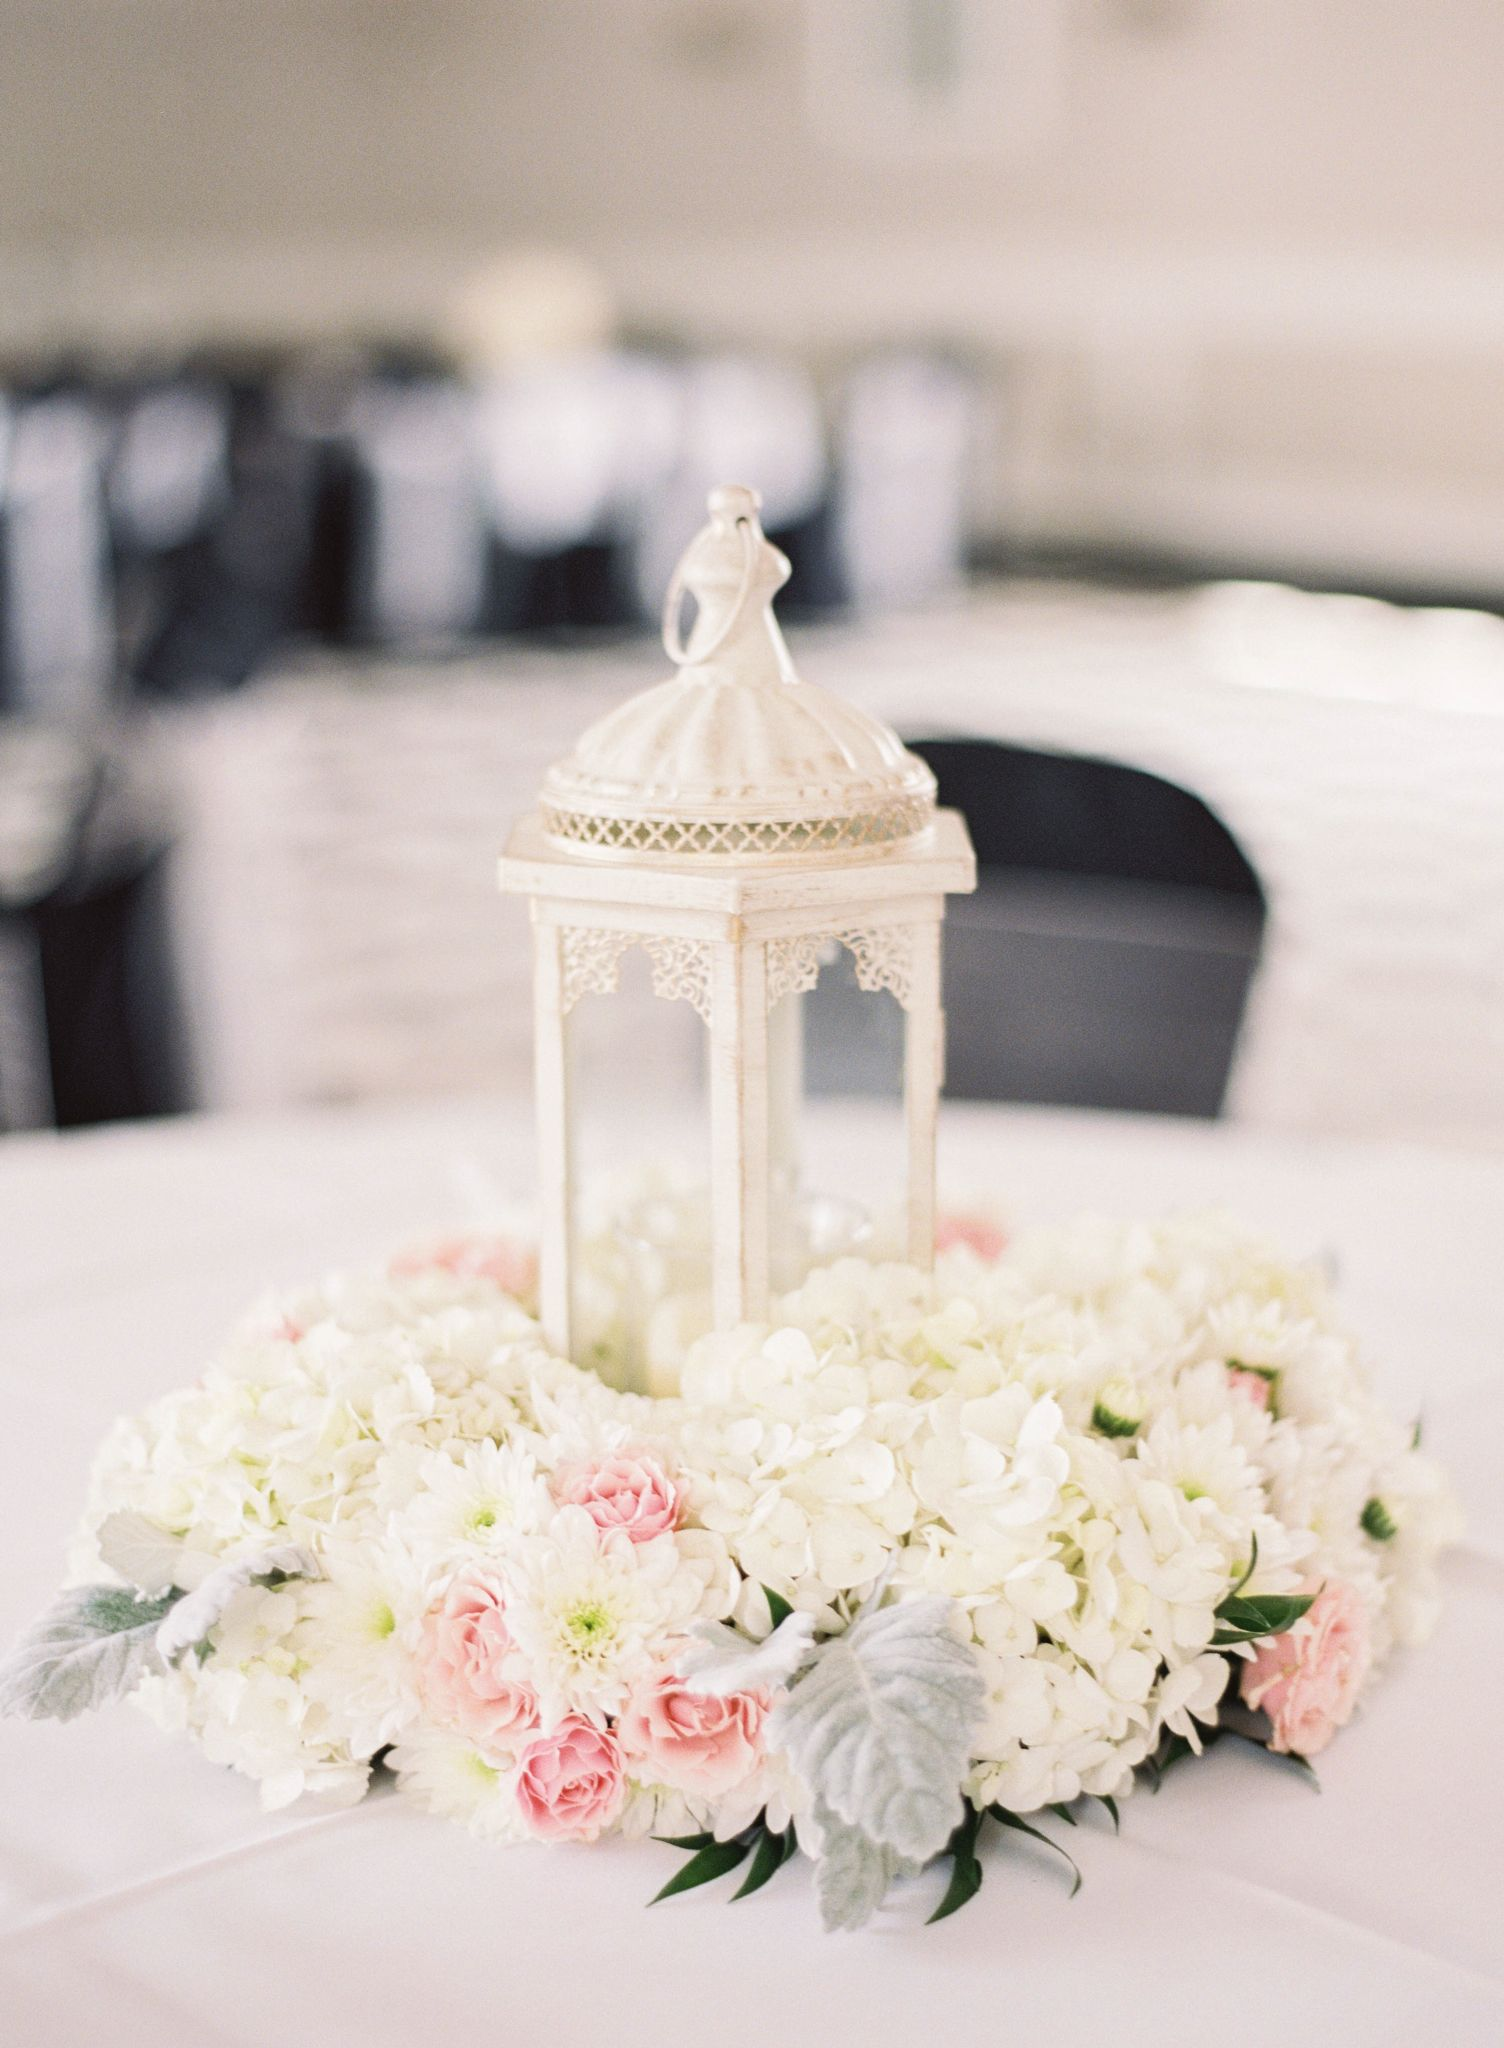 Ivory Lanterns With A Wreath Of Fresh White Hydrangea And Cushion Mums Pink Roses Dusty Miller Centerpieces